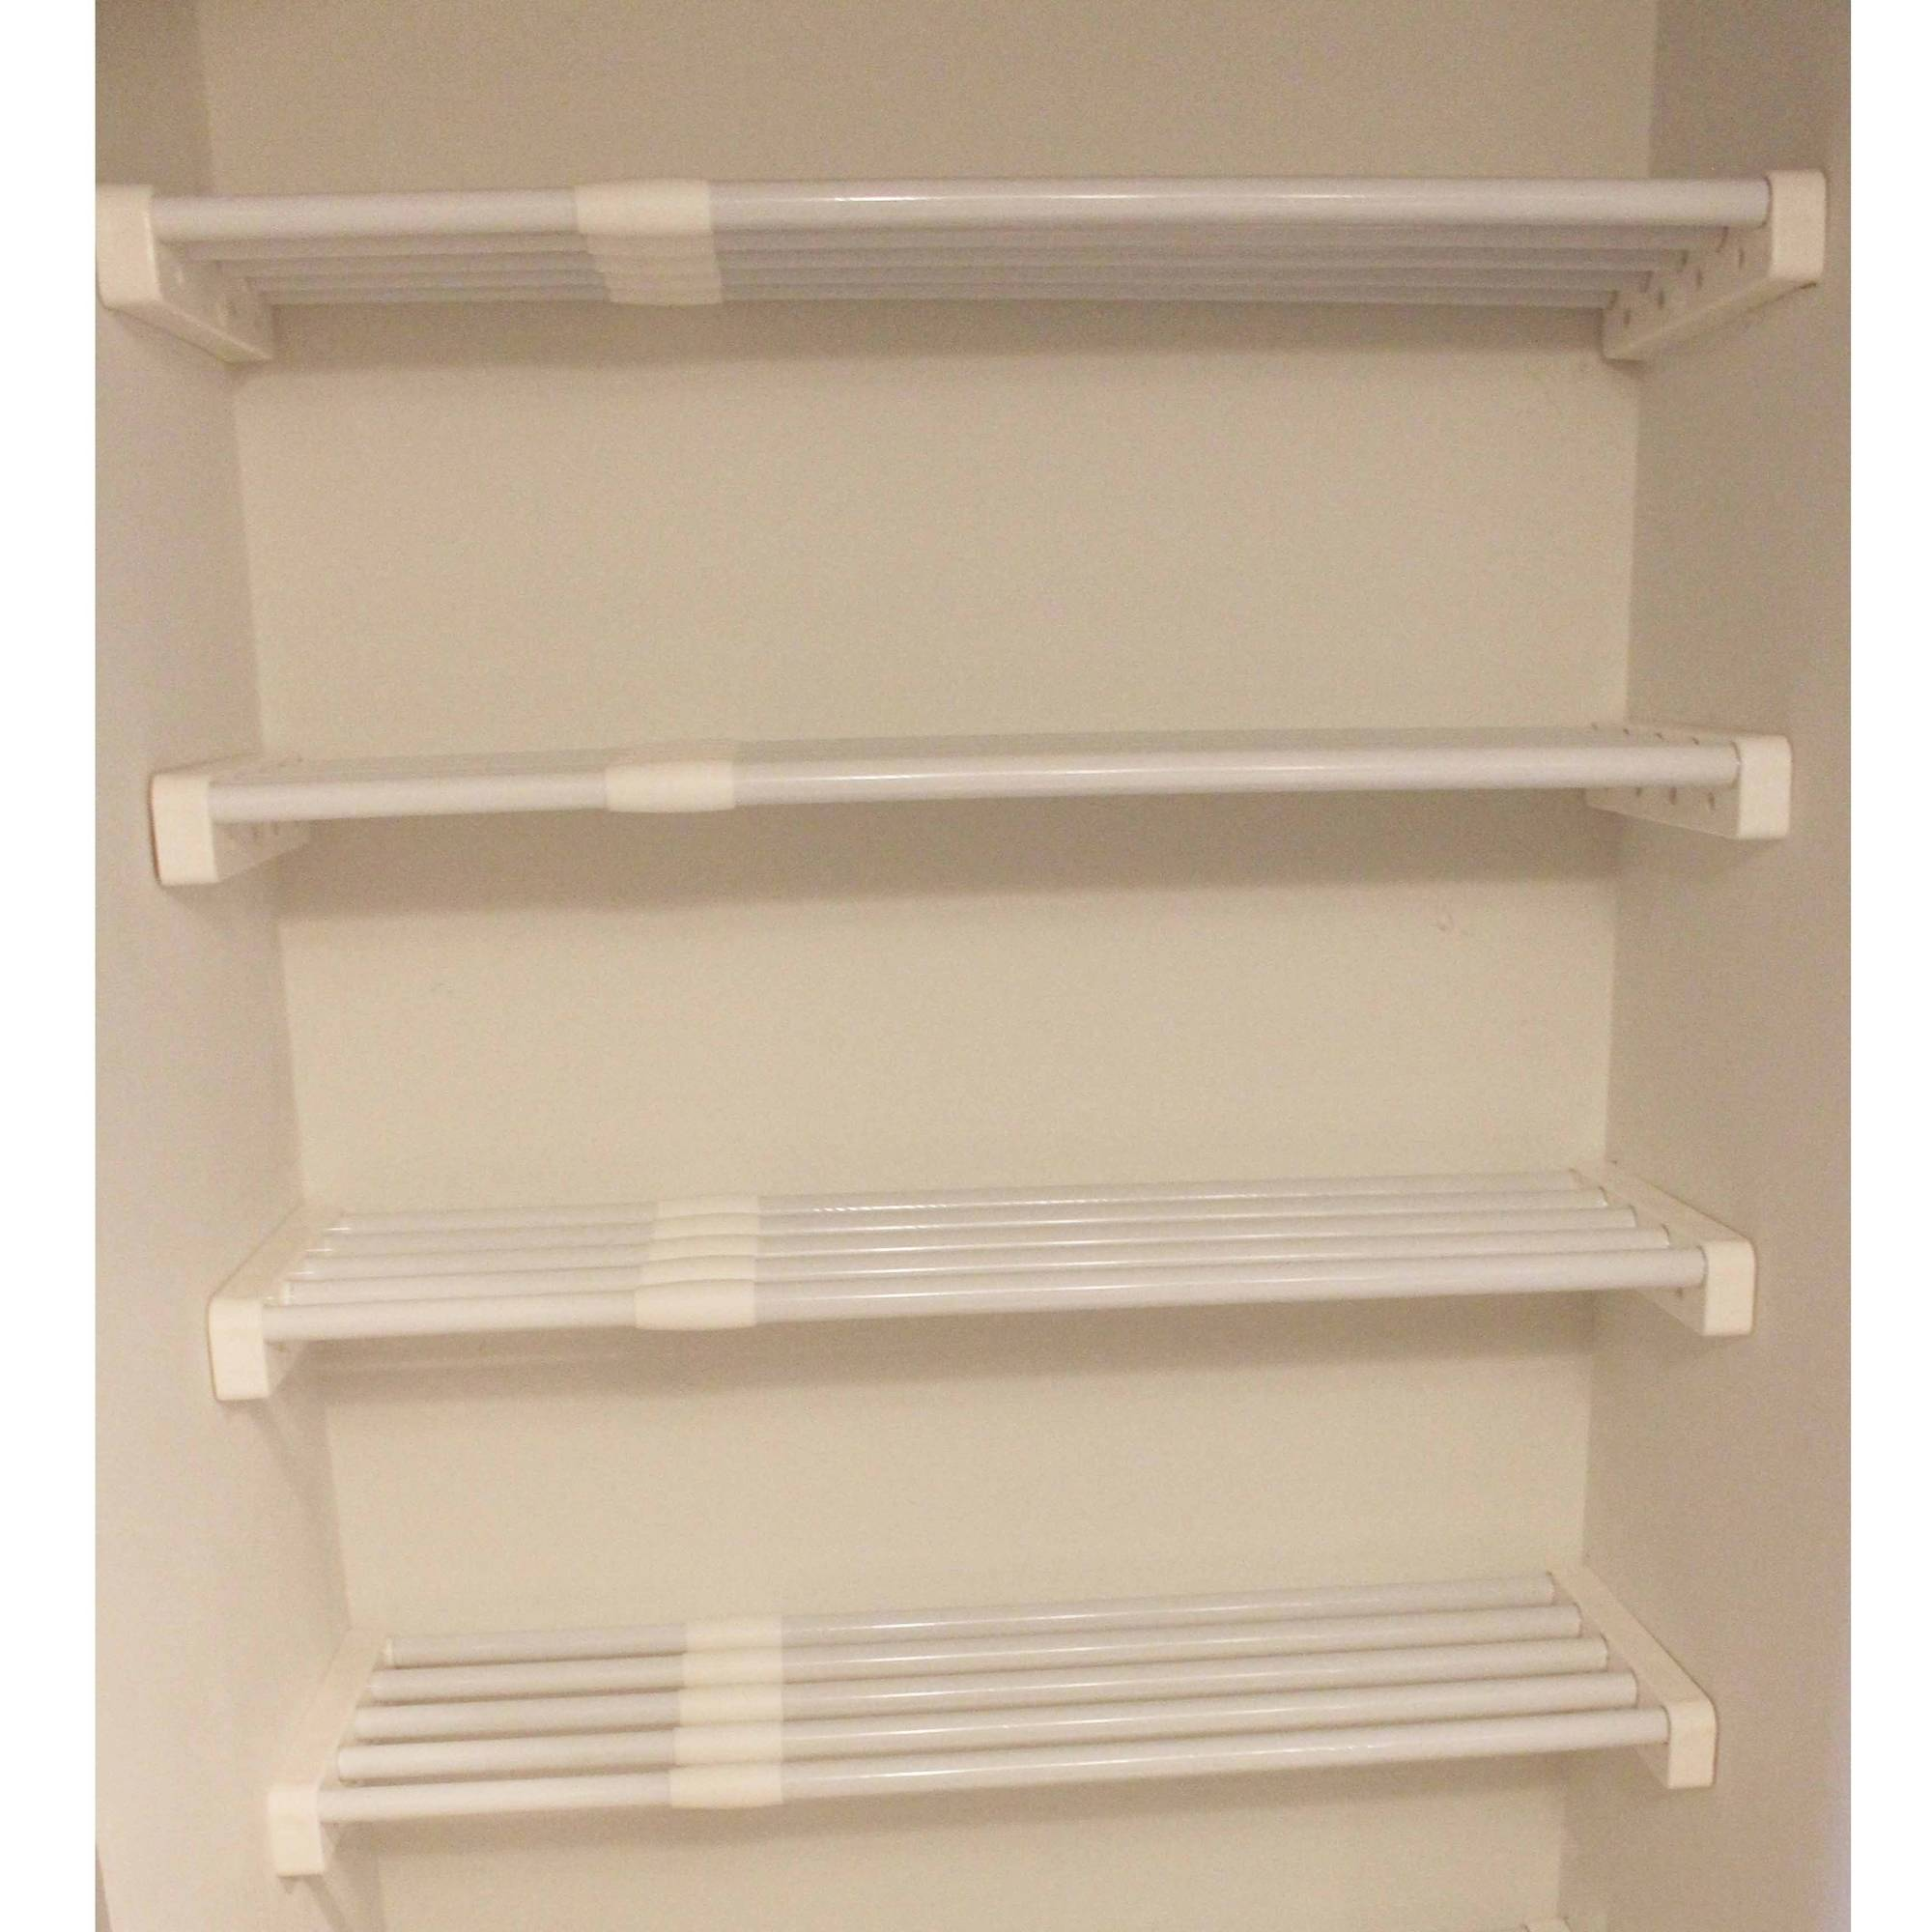 Easy Track Closet Rs1423on 24 Quot White Shelves 2 Count